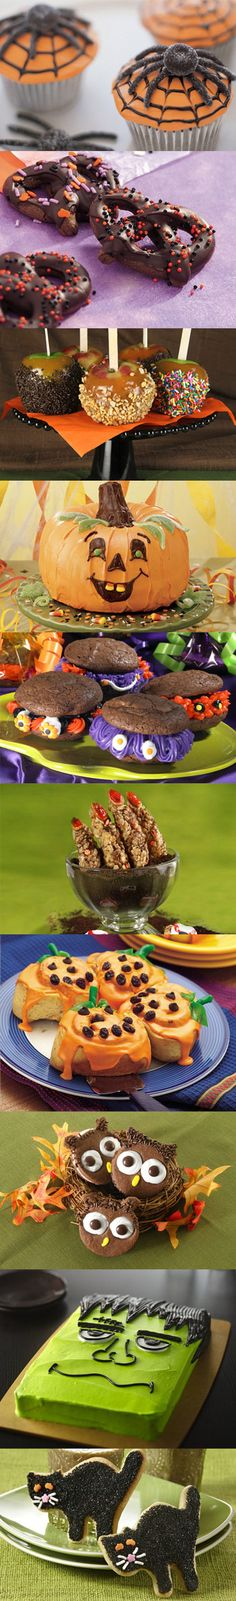 Halloween party treats! I just love Halloween! Love the Jack O Lantern cinnamon rolls.